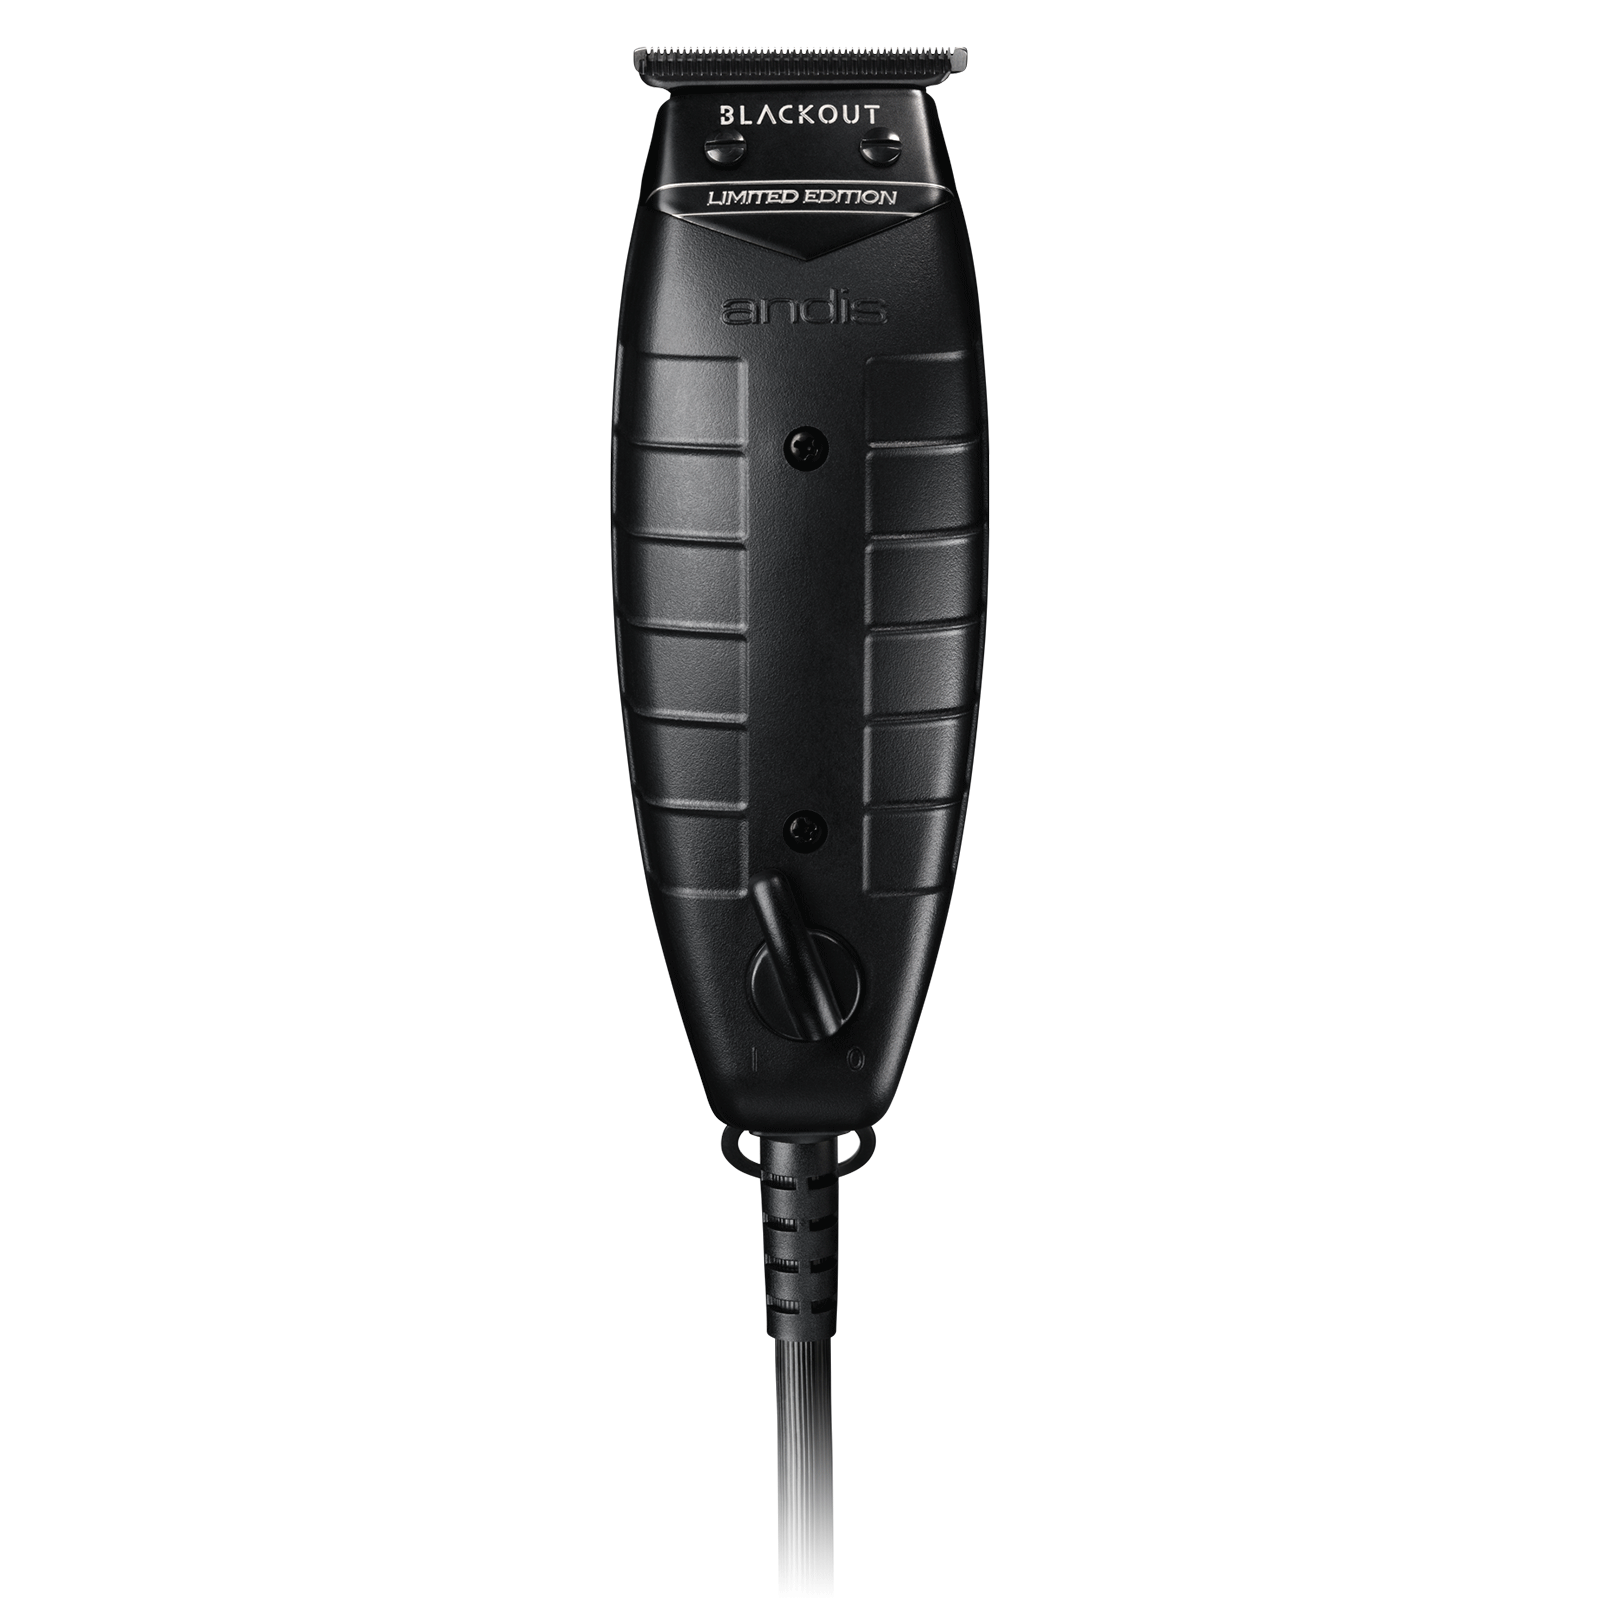 T-Outliner® Blackout™ T-Blade Trimmer - Andis | CosmoProf